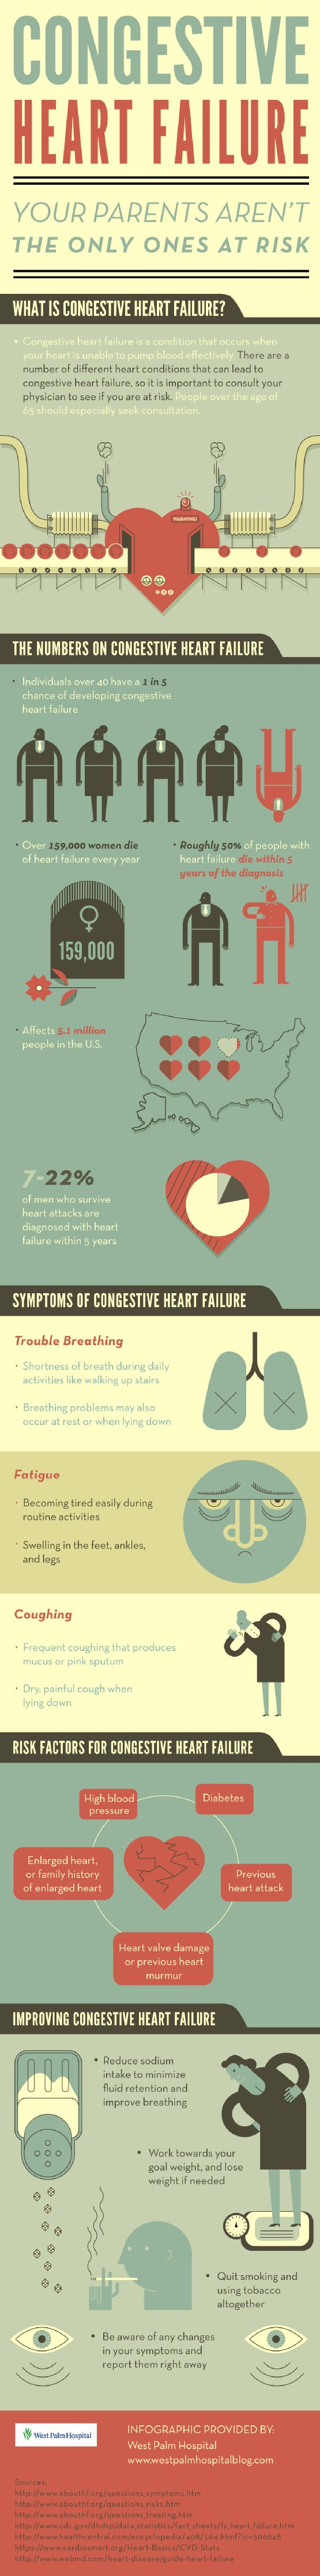 Congestive heart failure occurs when the heart is unable to pump blood effectively. Many heart conditions can lead to heart failure, making it important to get informed! Find the facts by reading through this infographic from a hospital in West Palm Beach.